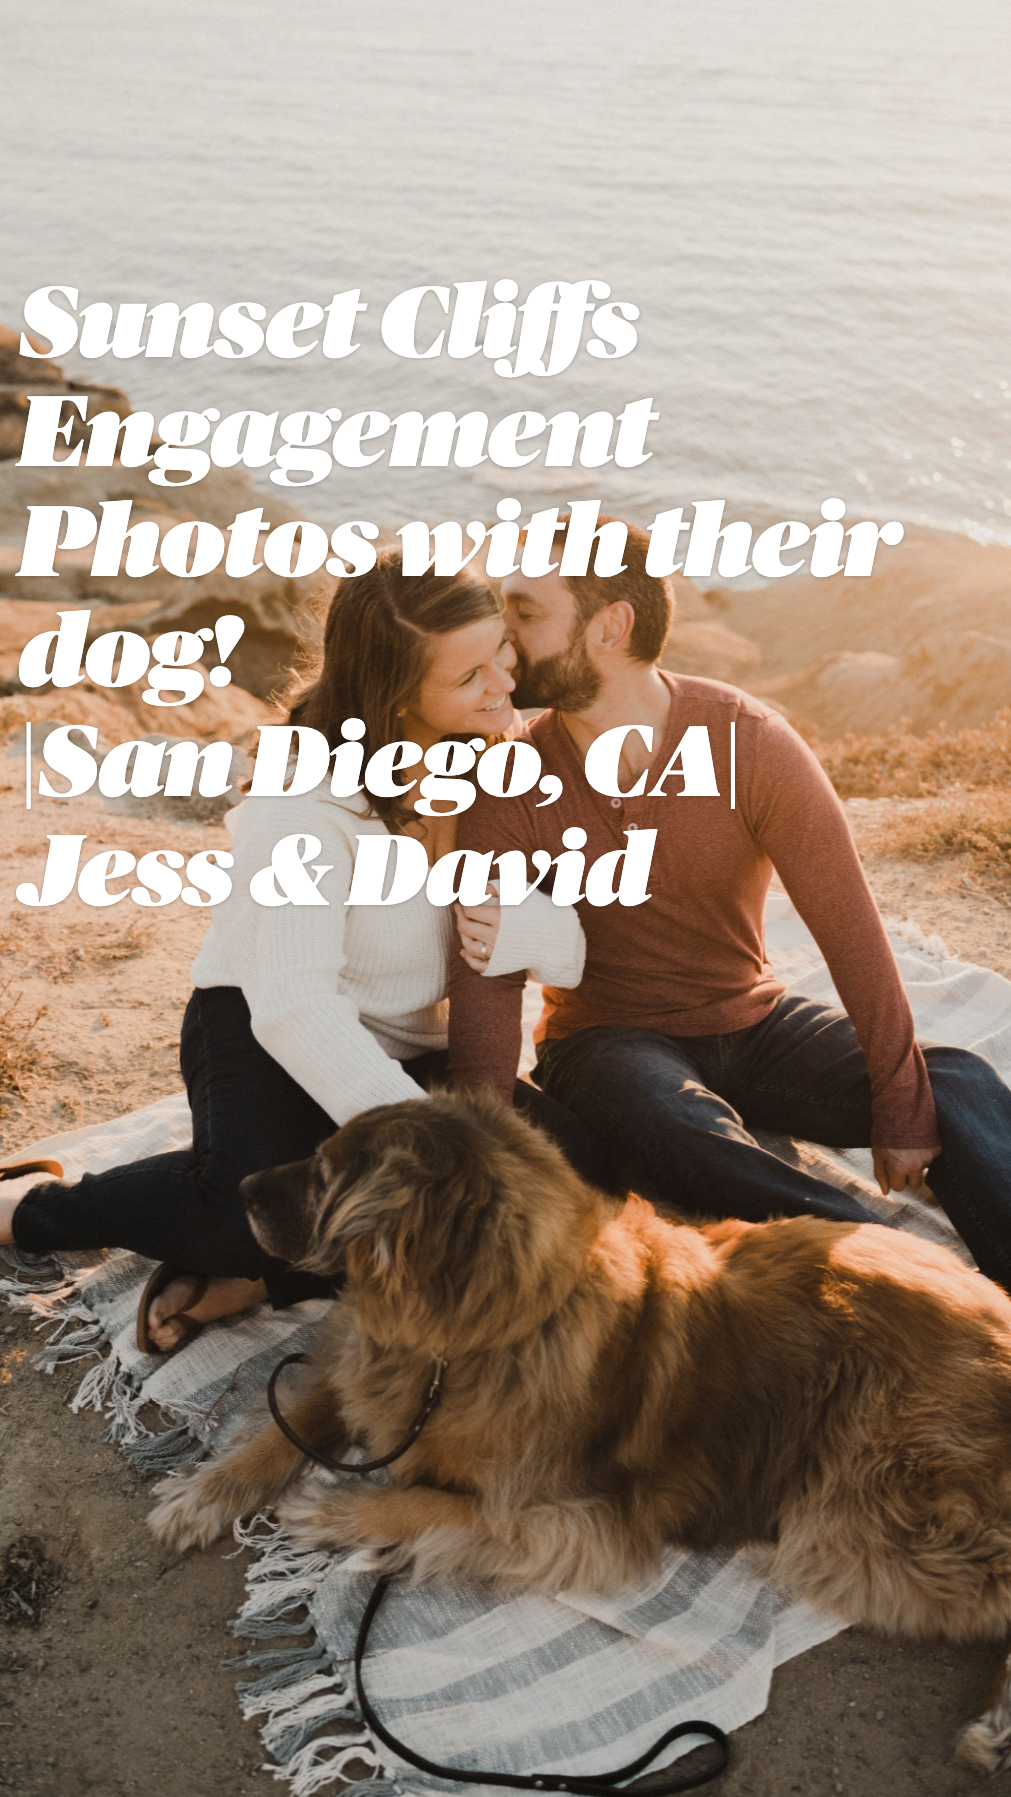 Sunset Cliffs Engagement Photos with their dog! |San Diego, CA| Jess & David